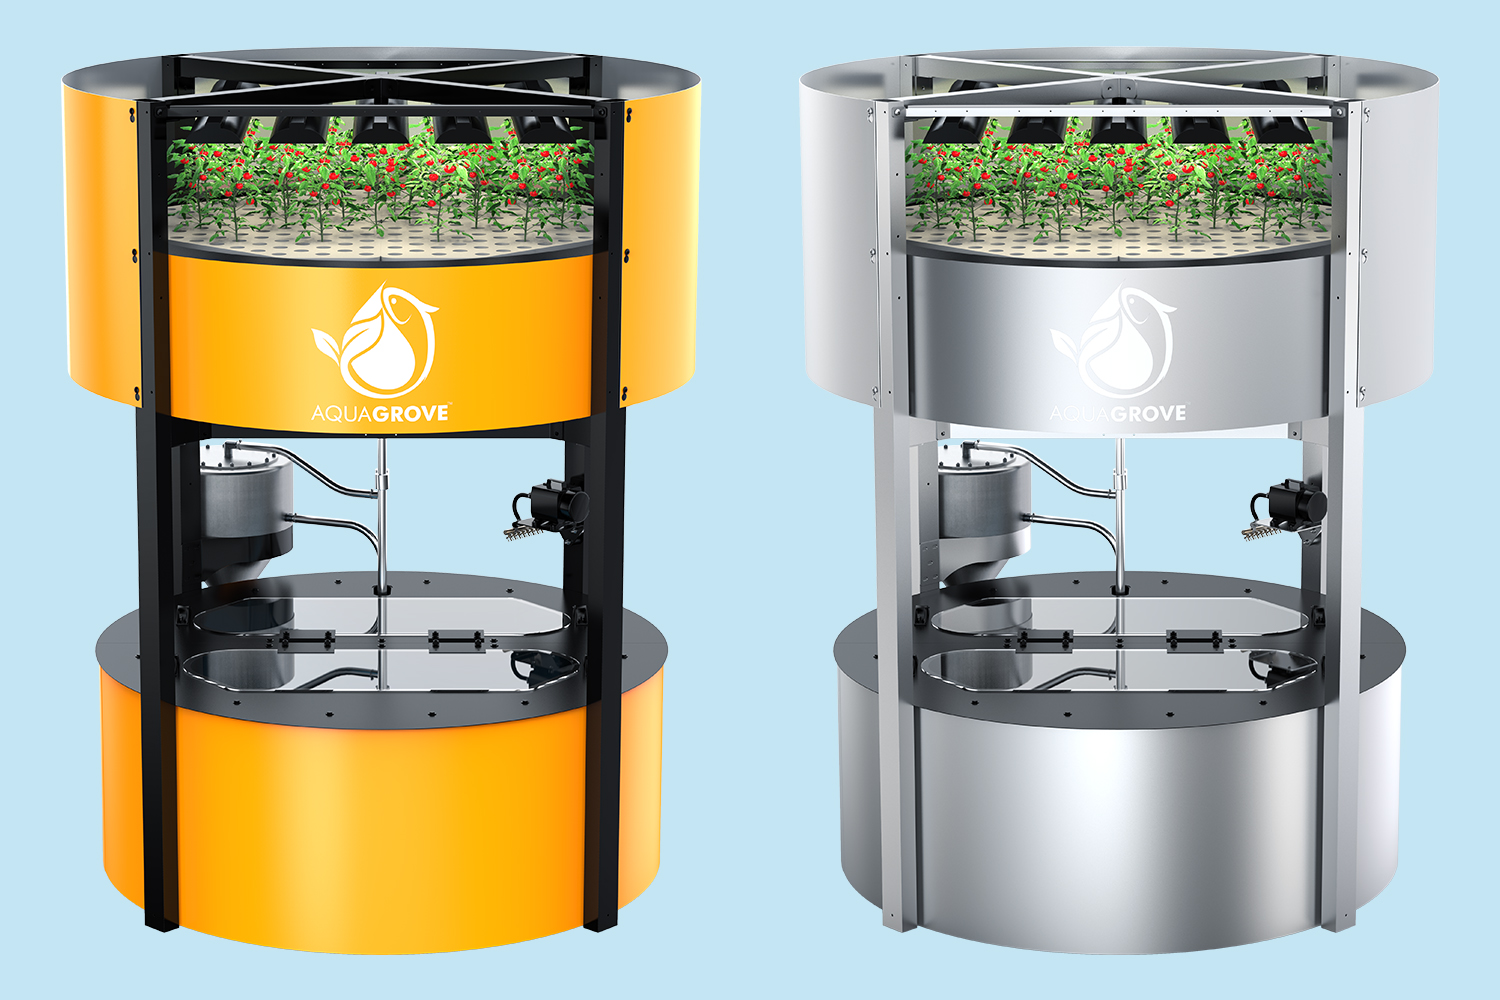 AquaGrove-The New Aquaponics